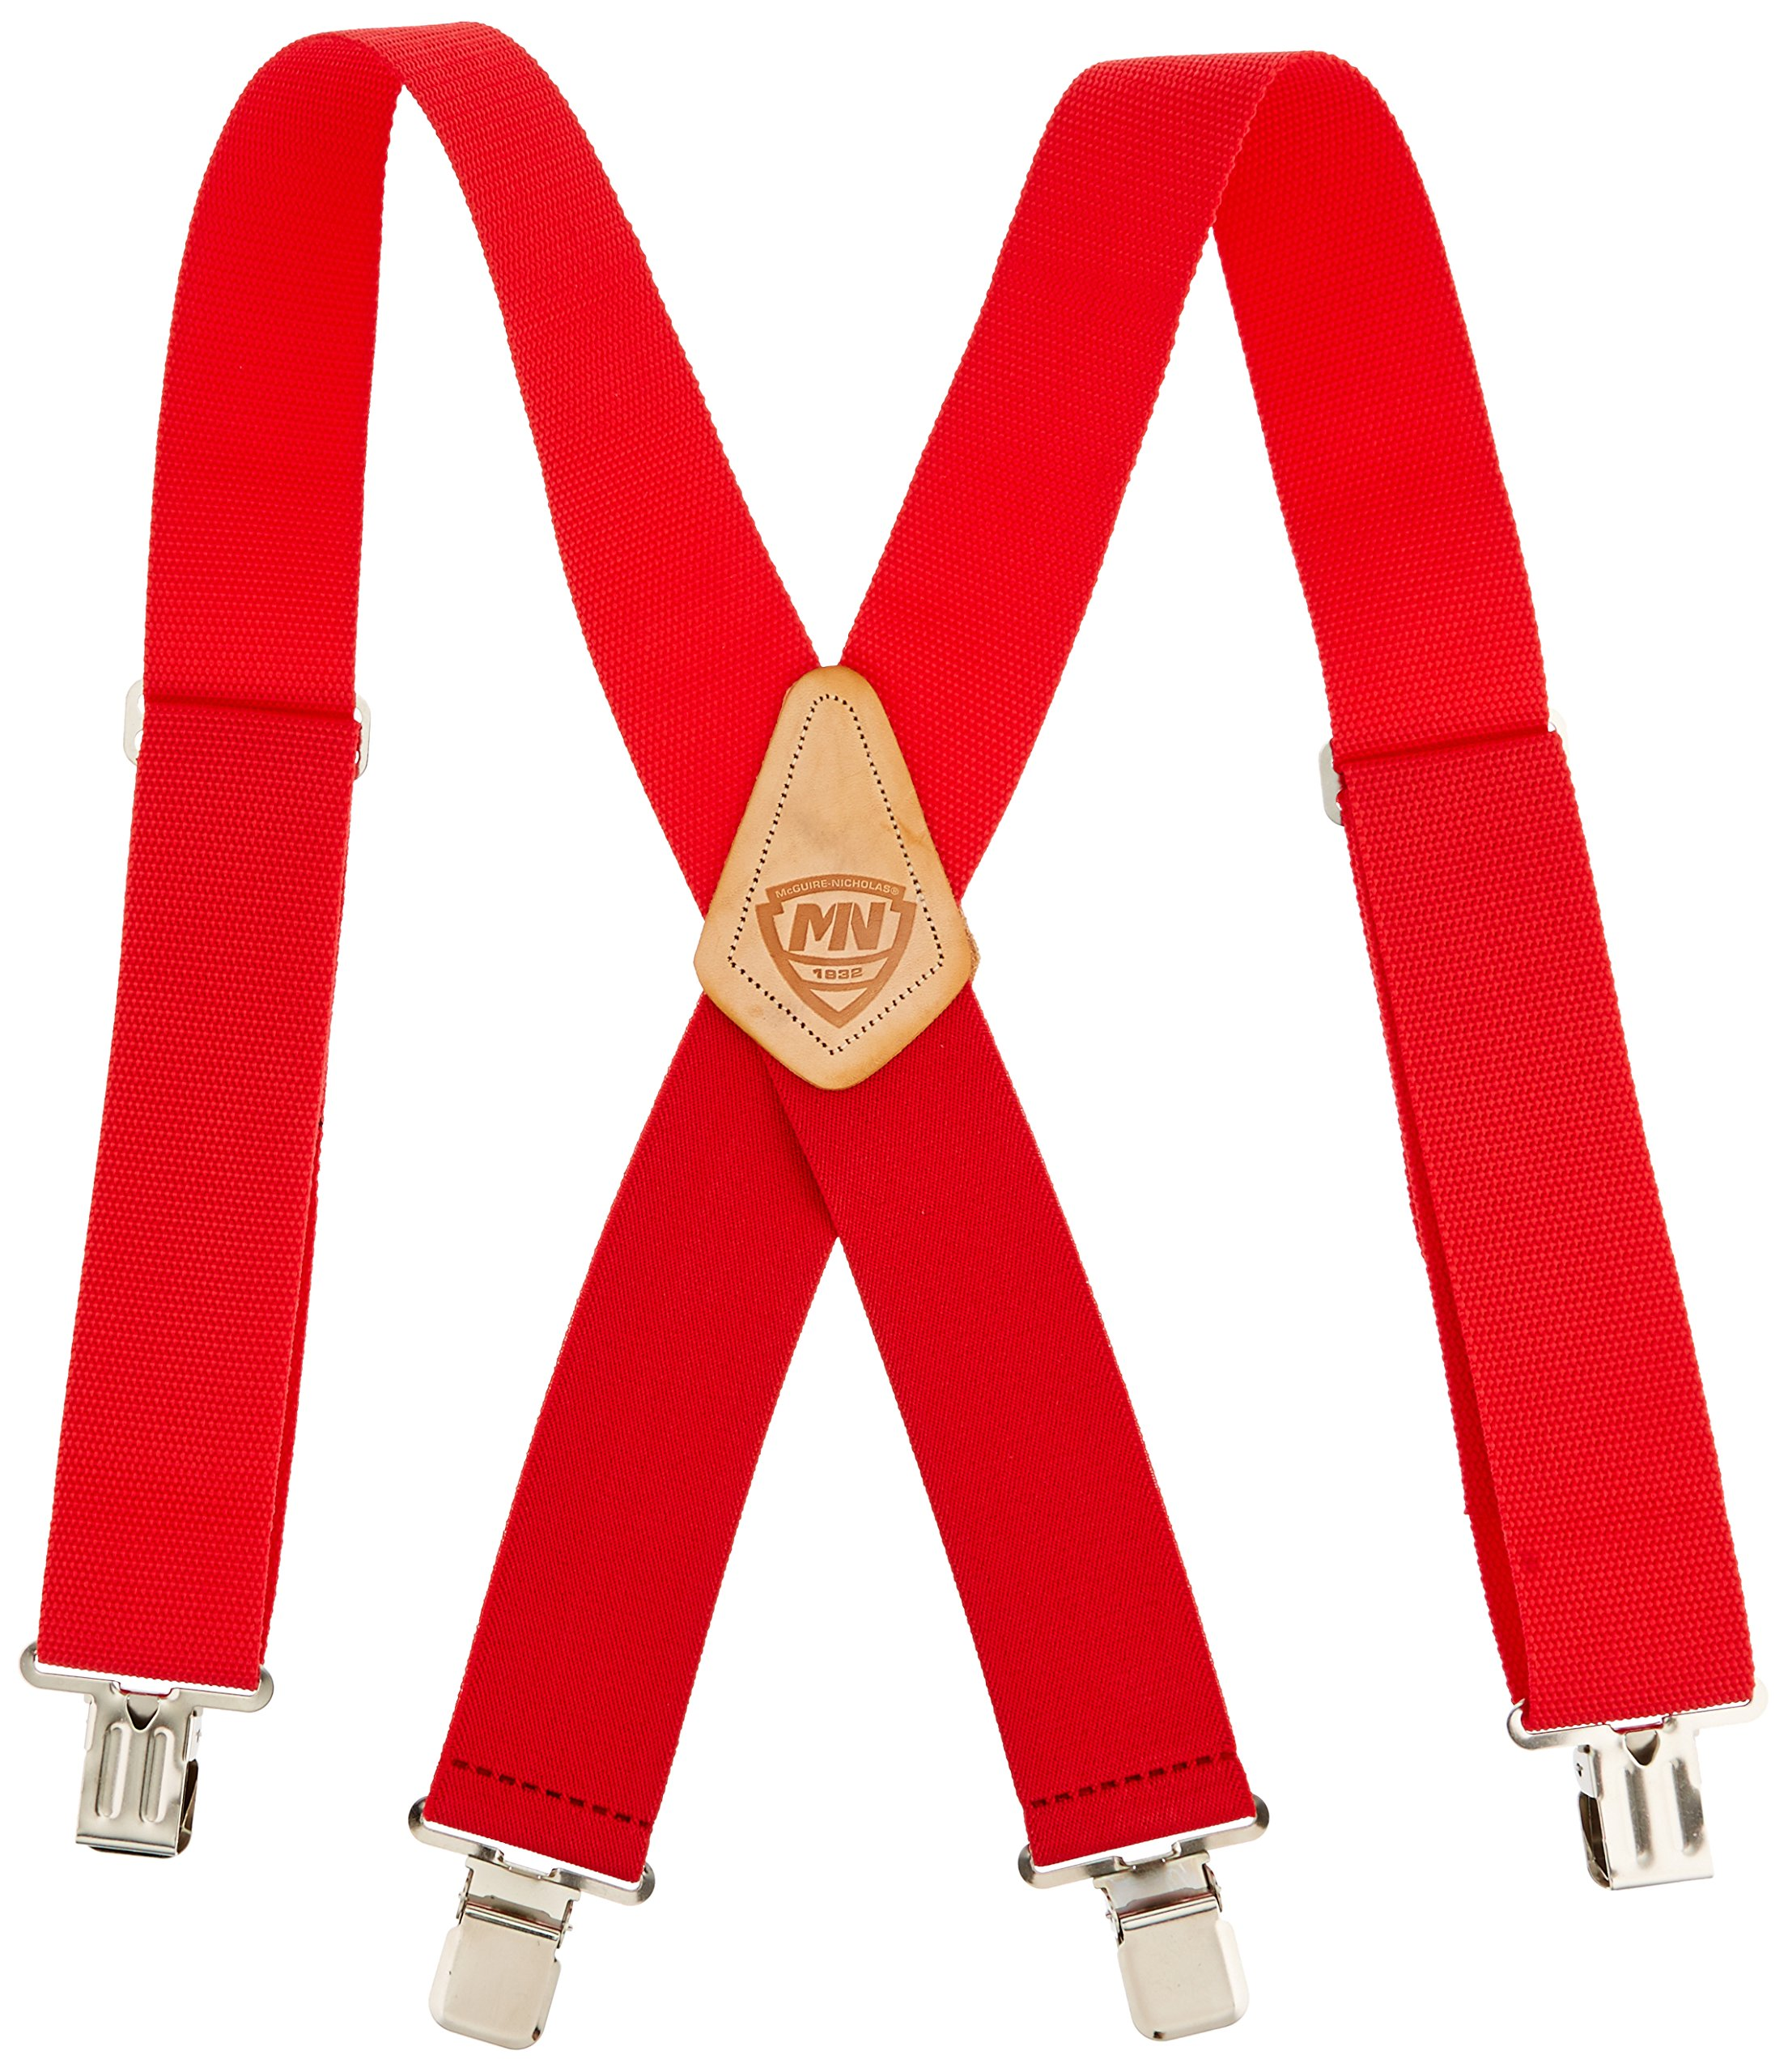 McGuire-Nicholas 110C 2-Inch Wide Red Suspenders